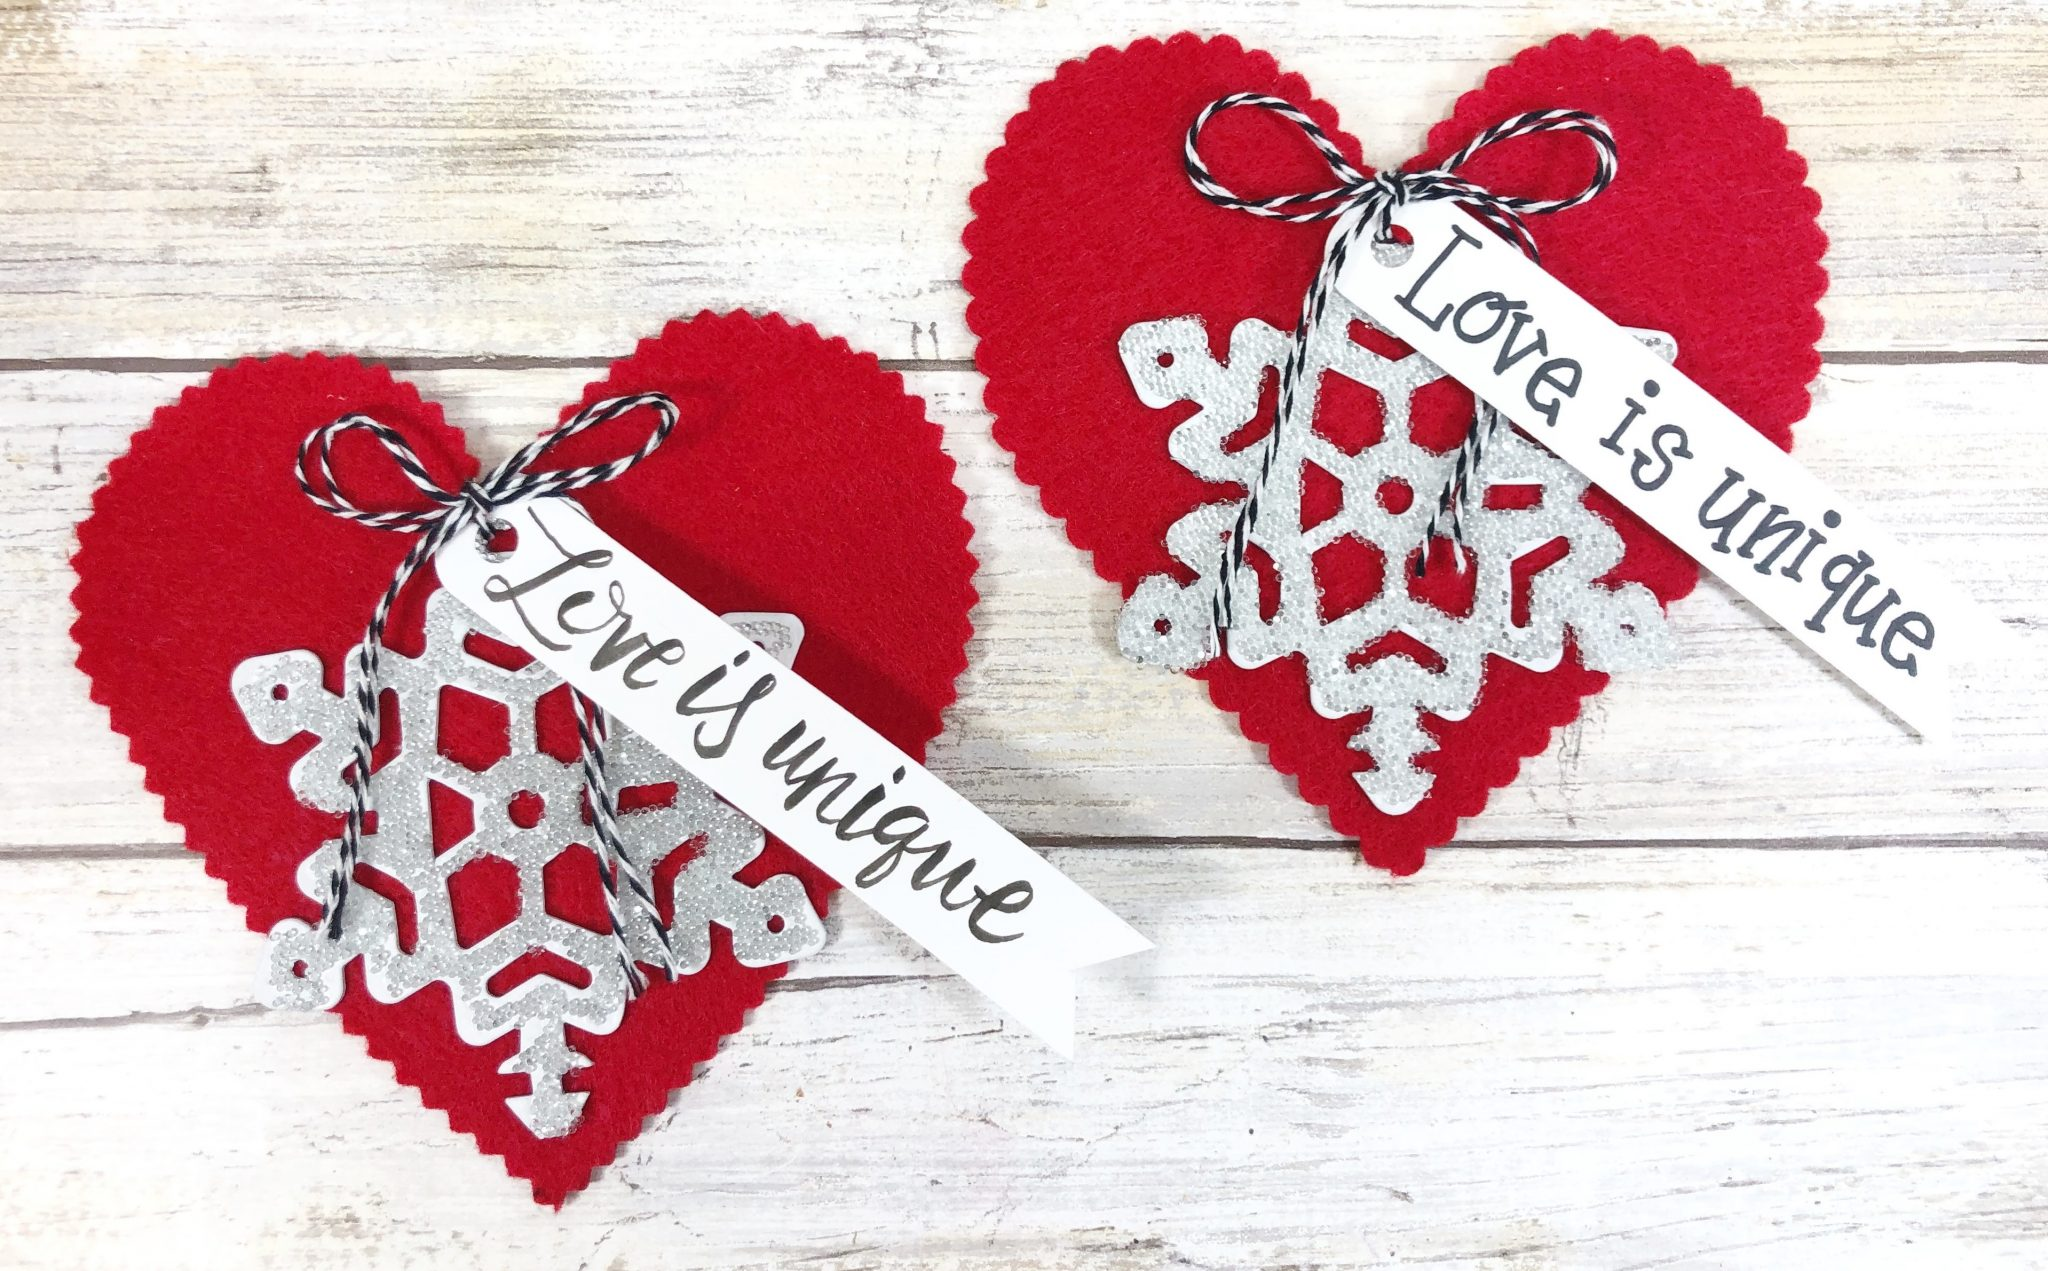 Glittery Art Abandonment Hearts with Fairfield World by Creatively Beth #creativelybeth #fairfieldworld #artabandonment #glittercrafts #heartcrafts #kindnesscrafts